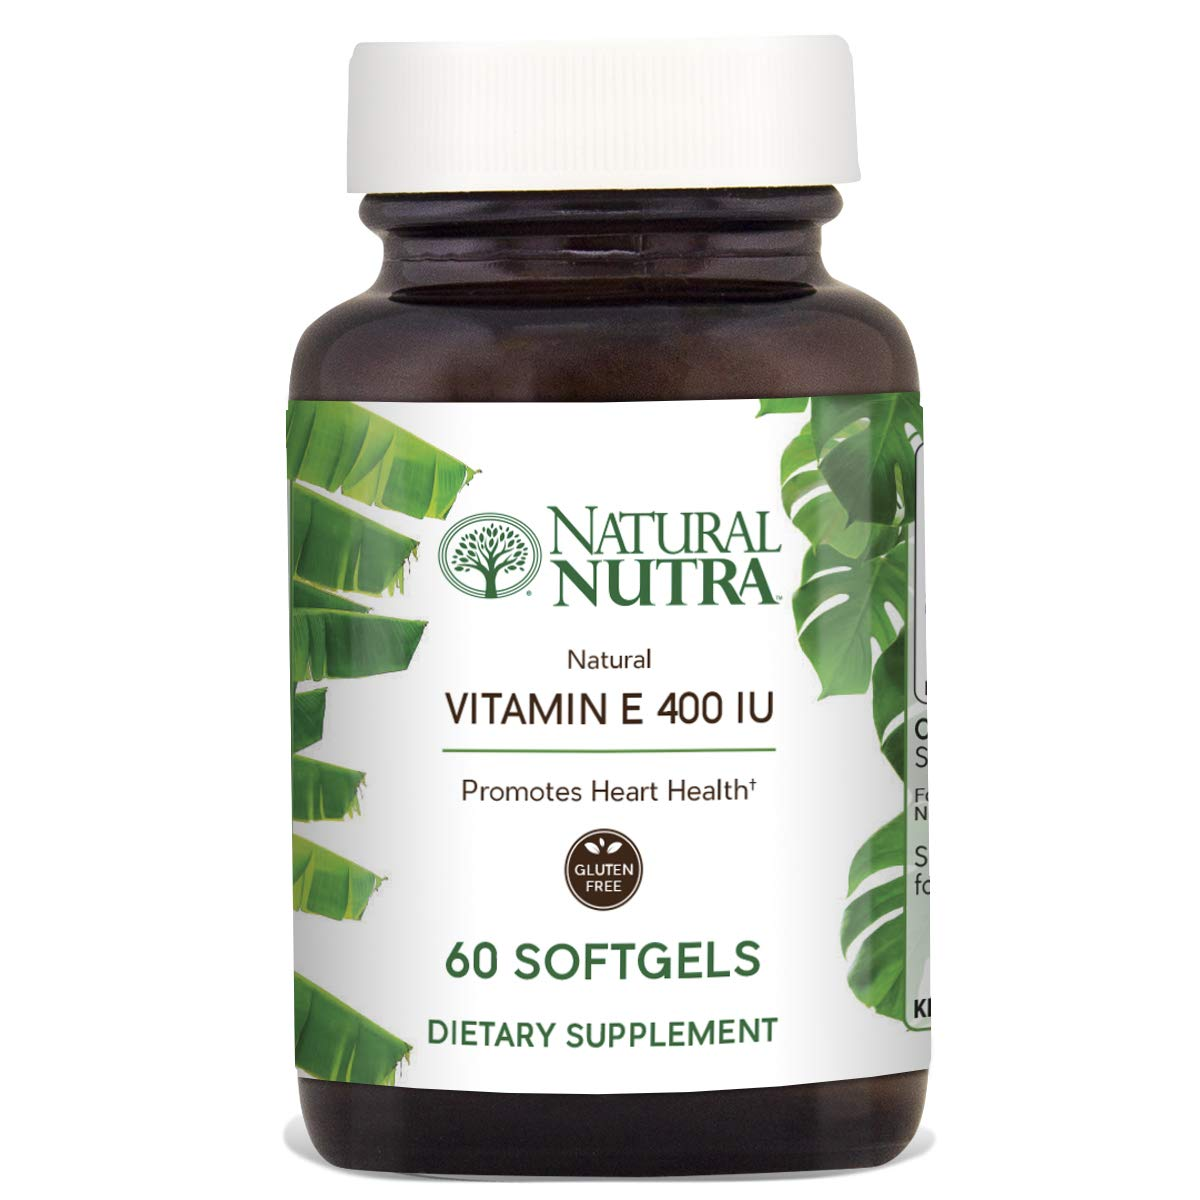 Natural Nutra d-Alpha Tocopherol Vitamin E 400 IU Supplement for Skin, Hair and Nails, Heart Health, Face Elasticity and Scar Repair, 60 Softgels